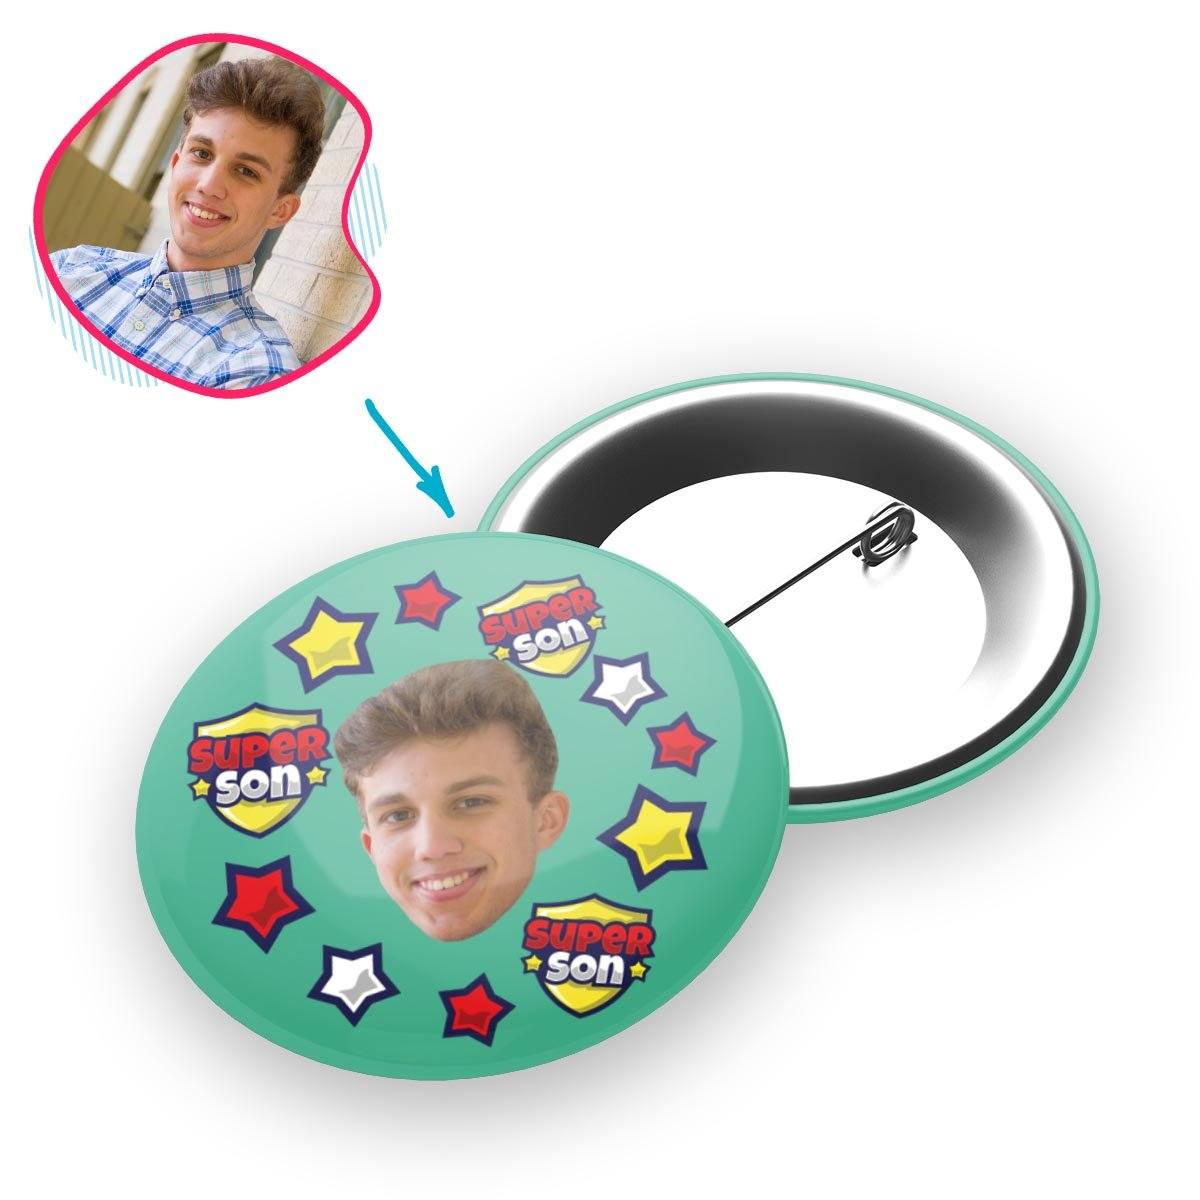 mint Super Son pin personalized with photo of face printed on it